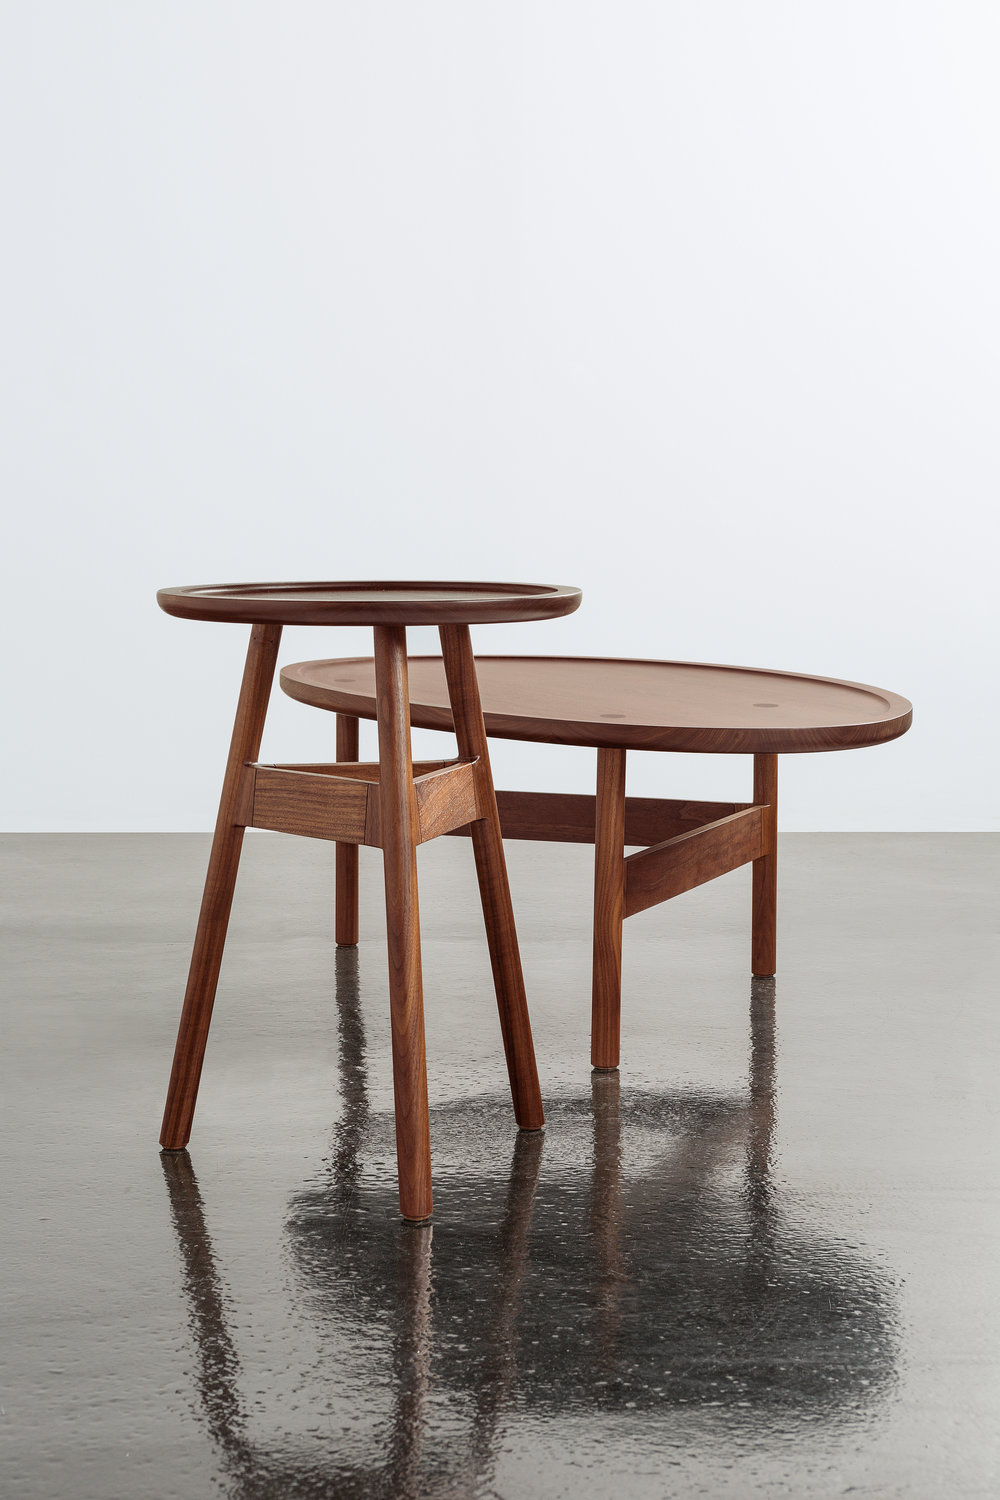 > Hartford Side Table and Coffee Table.